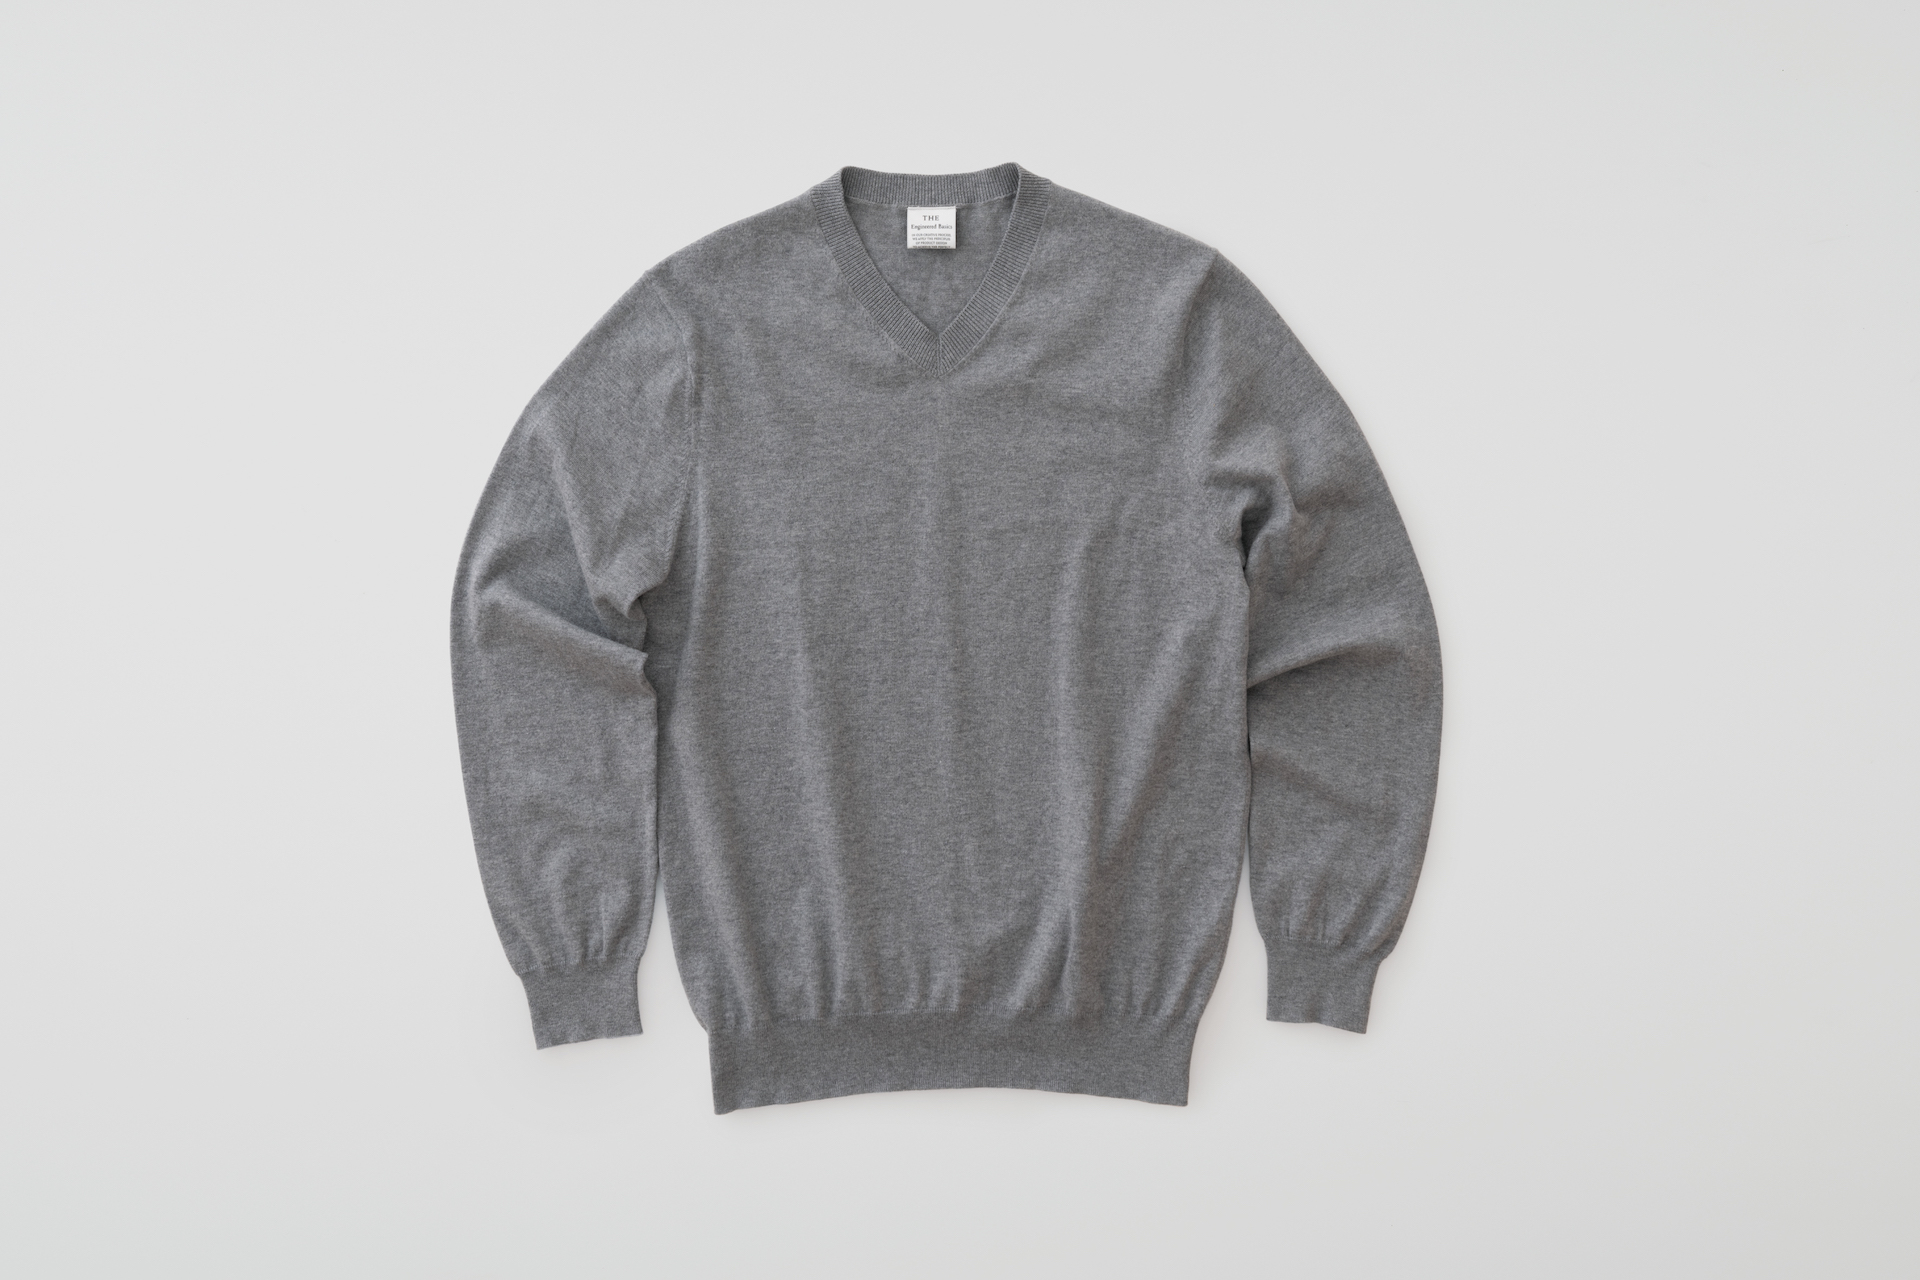 THE Sweater Crew neck / THE Sweater V-neck